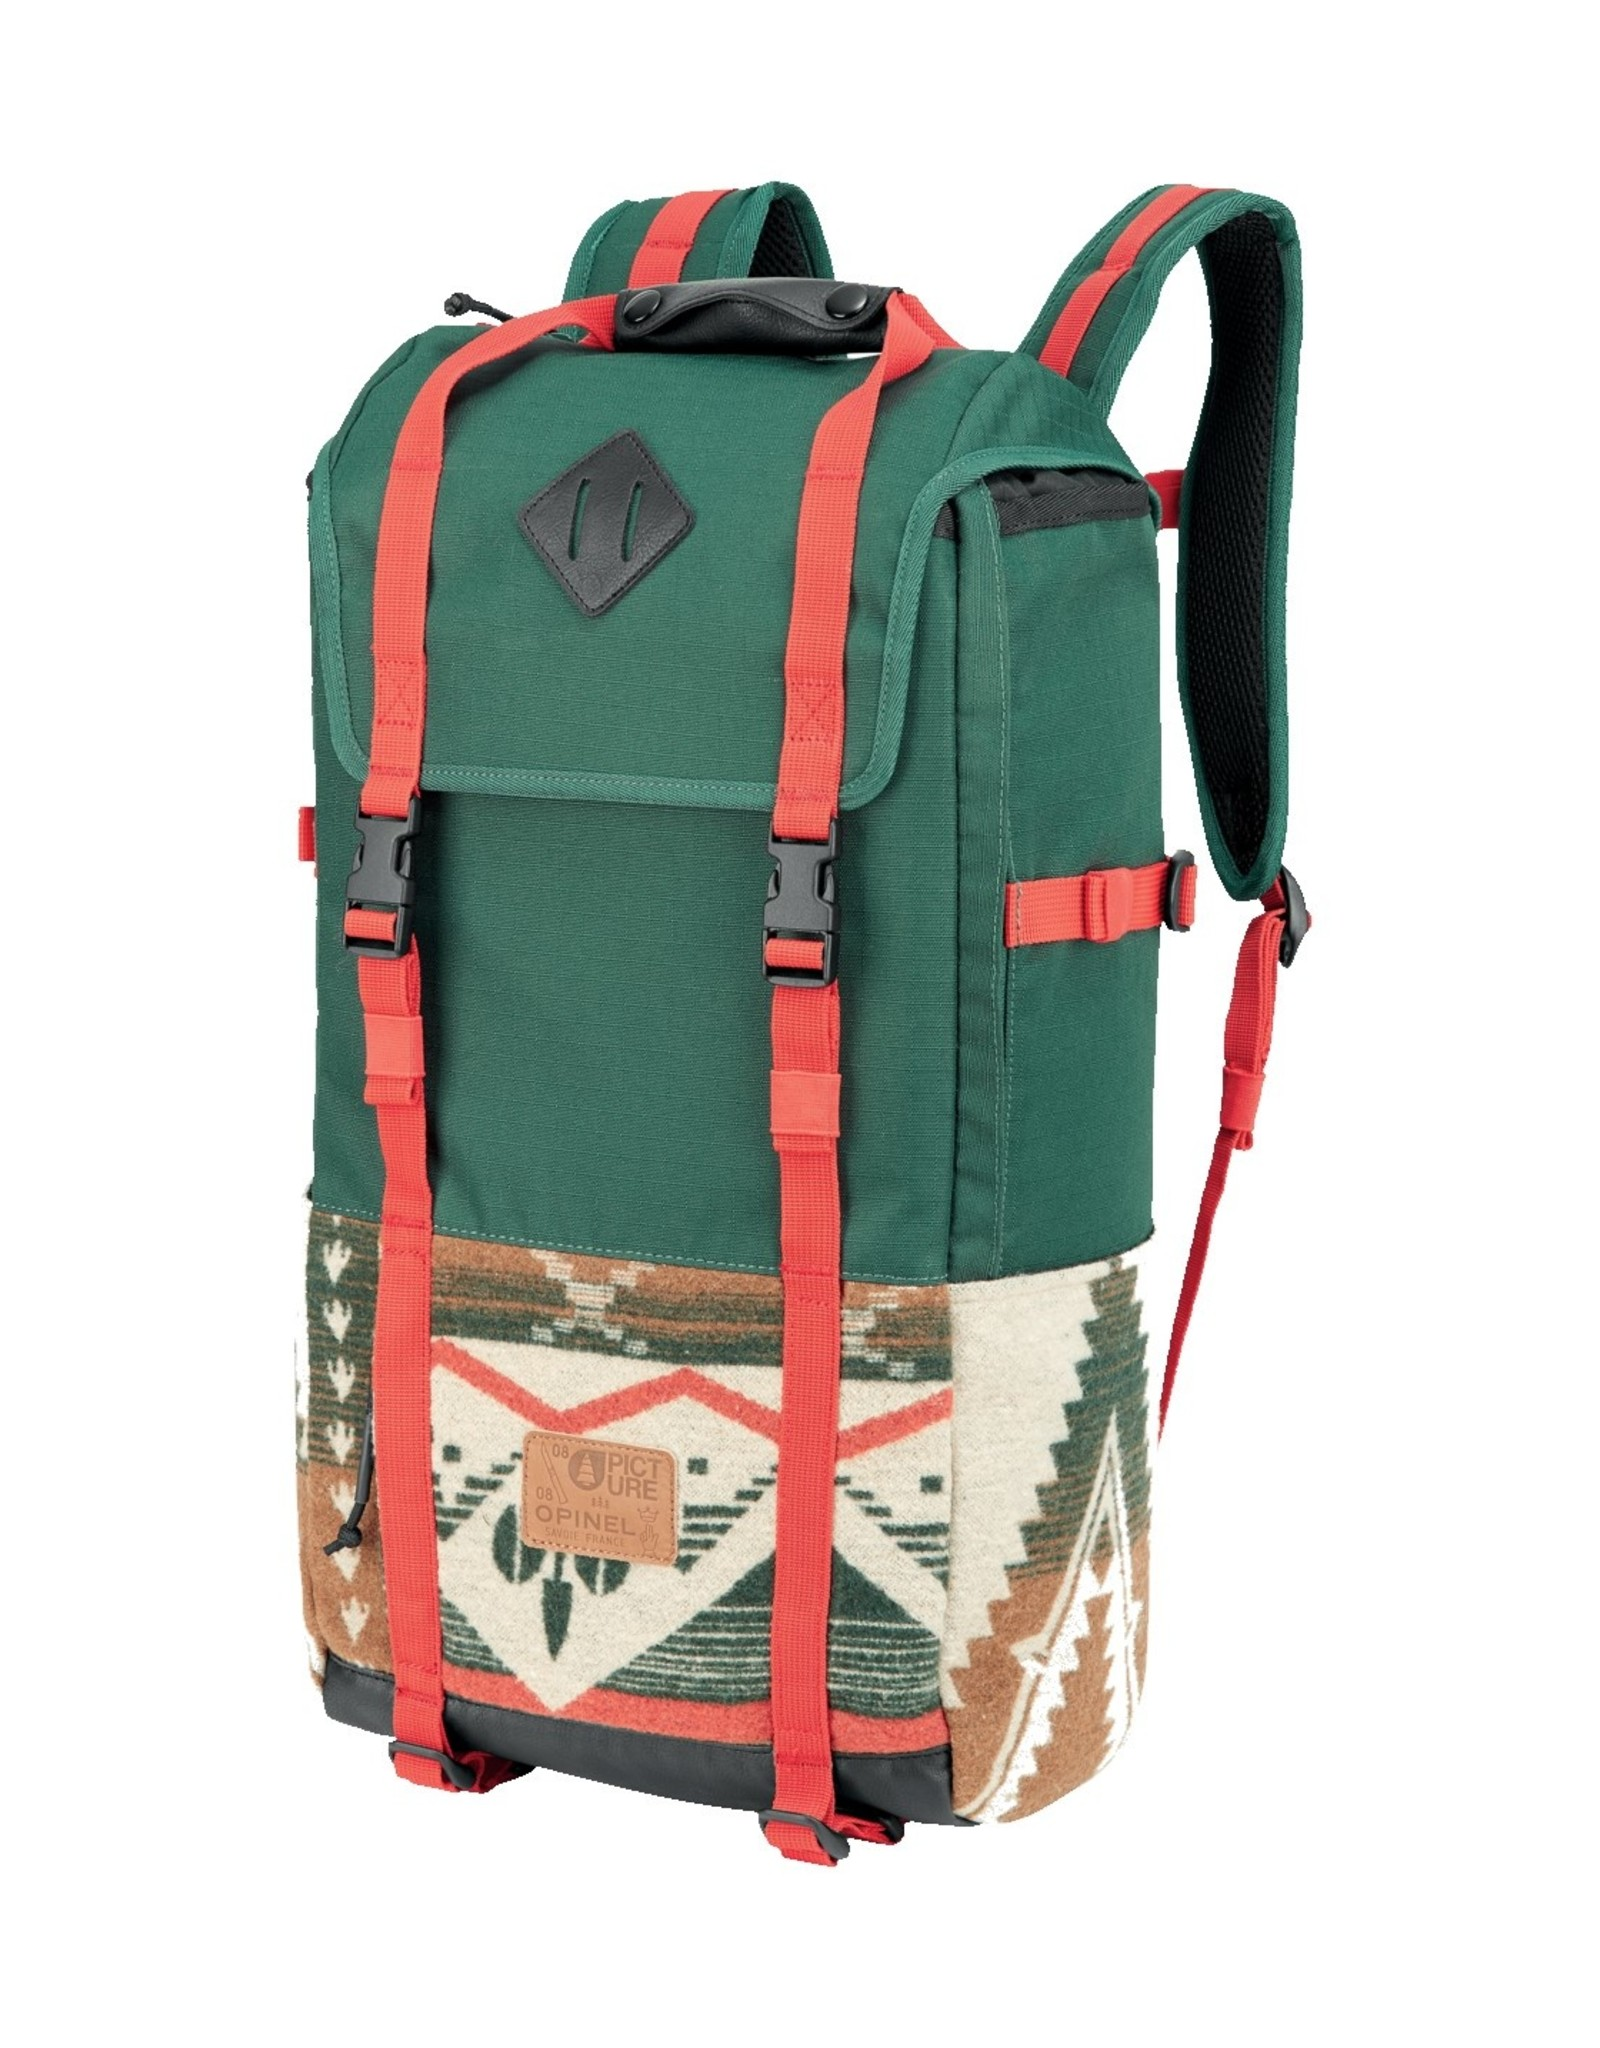 Picture Organic Clothing SOAVY BACKPACK OPINEL 20L